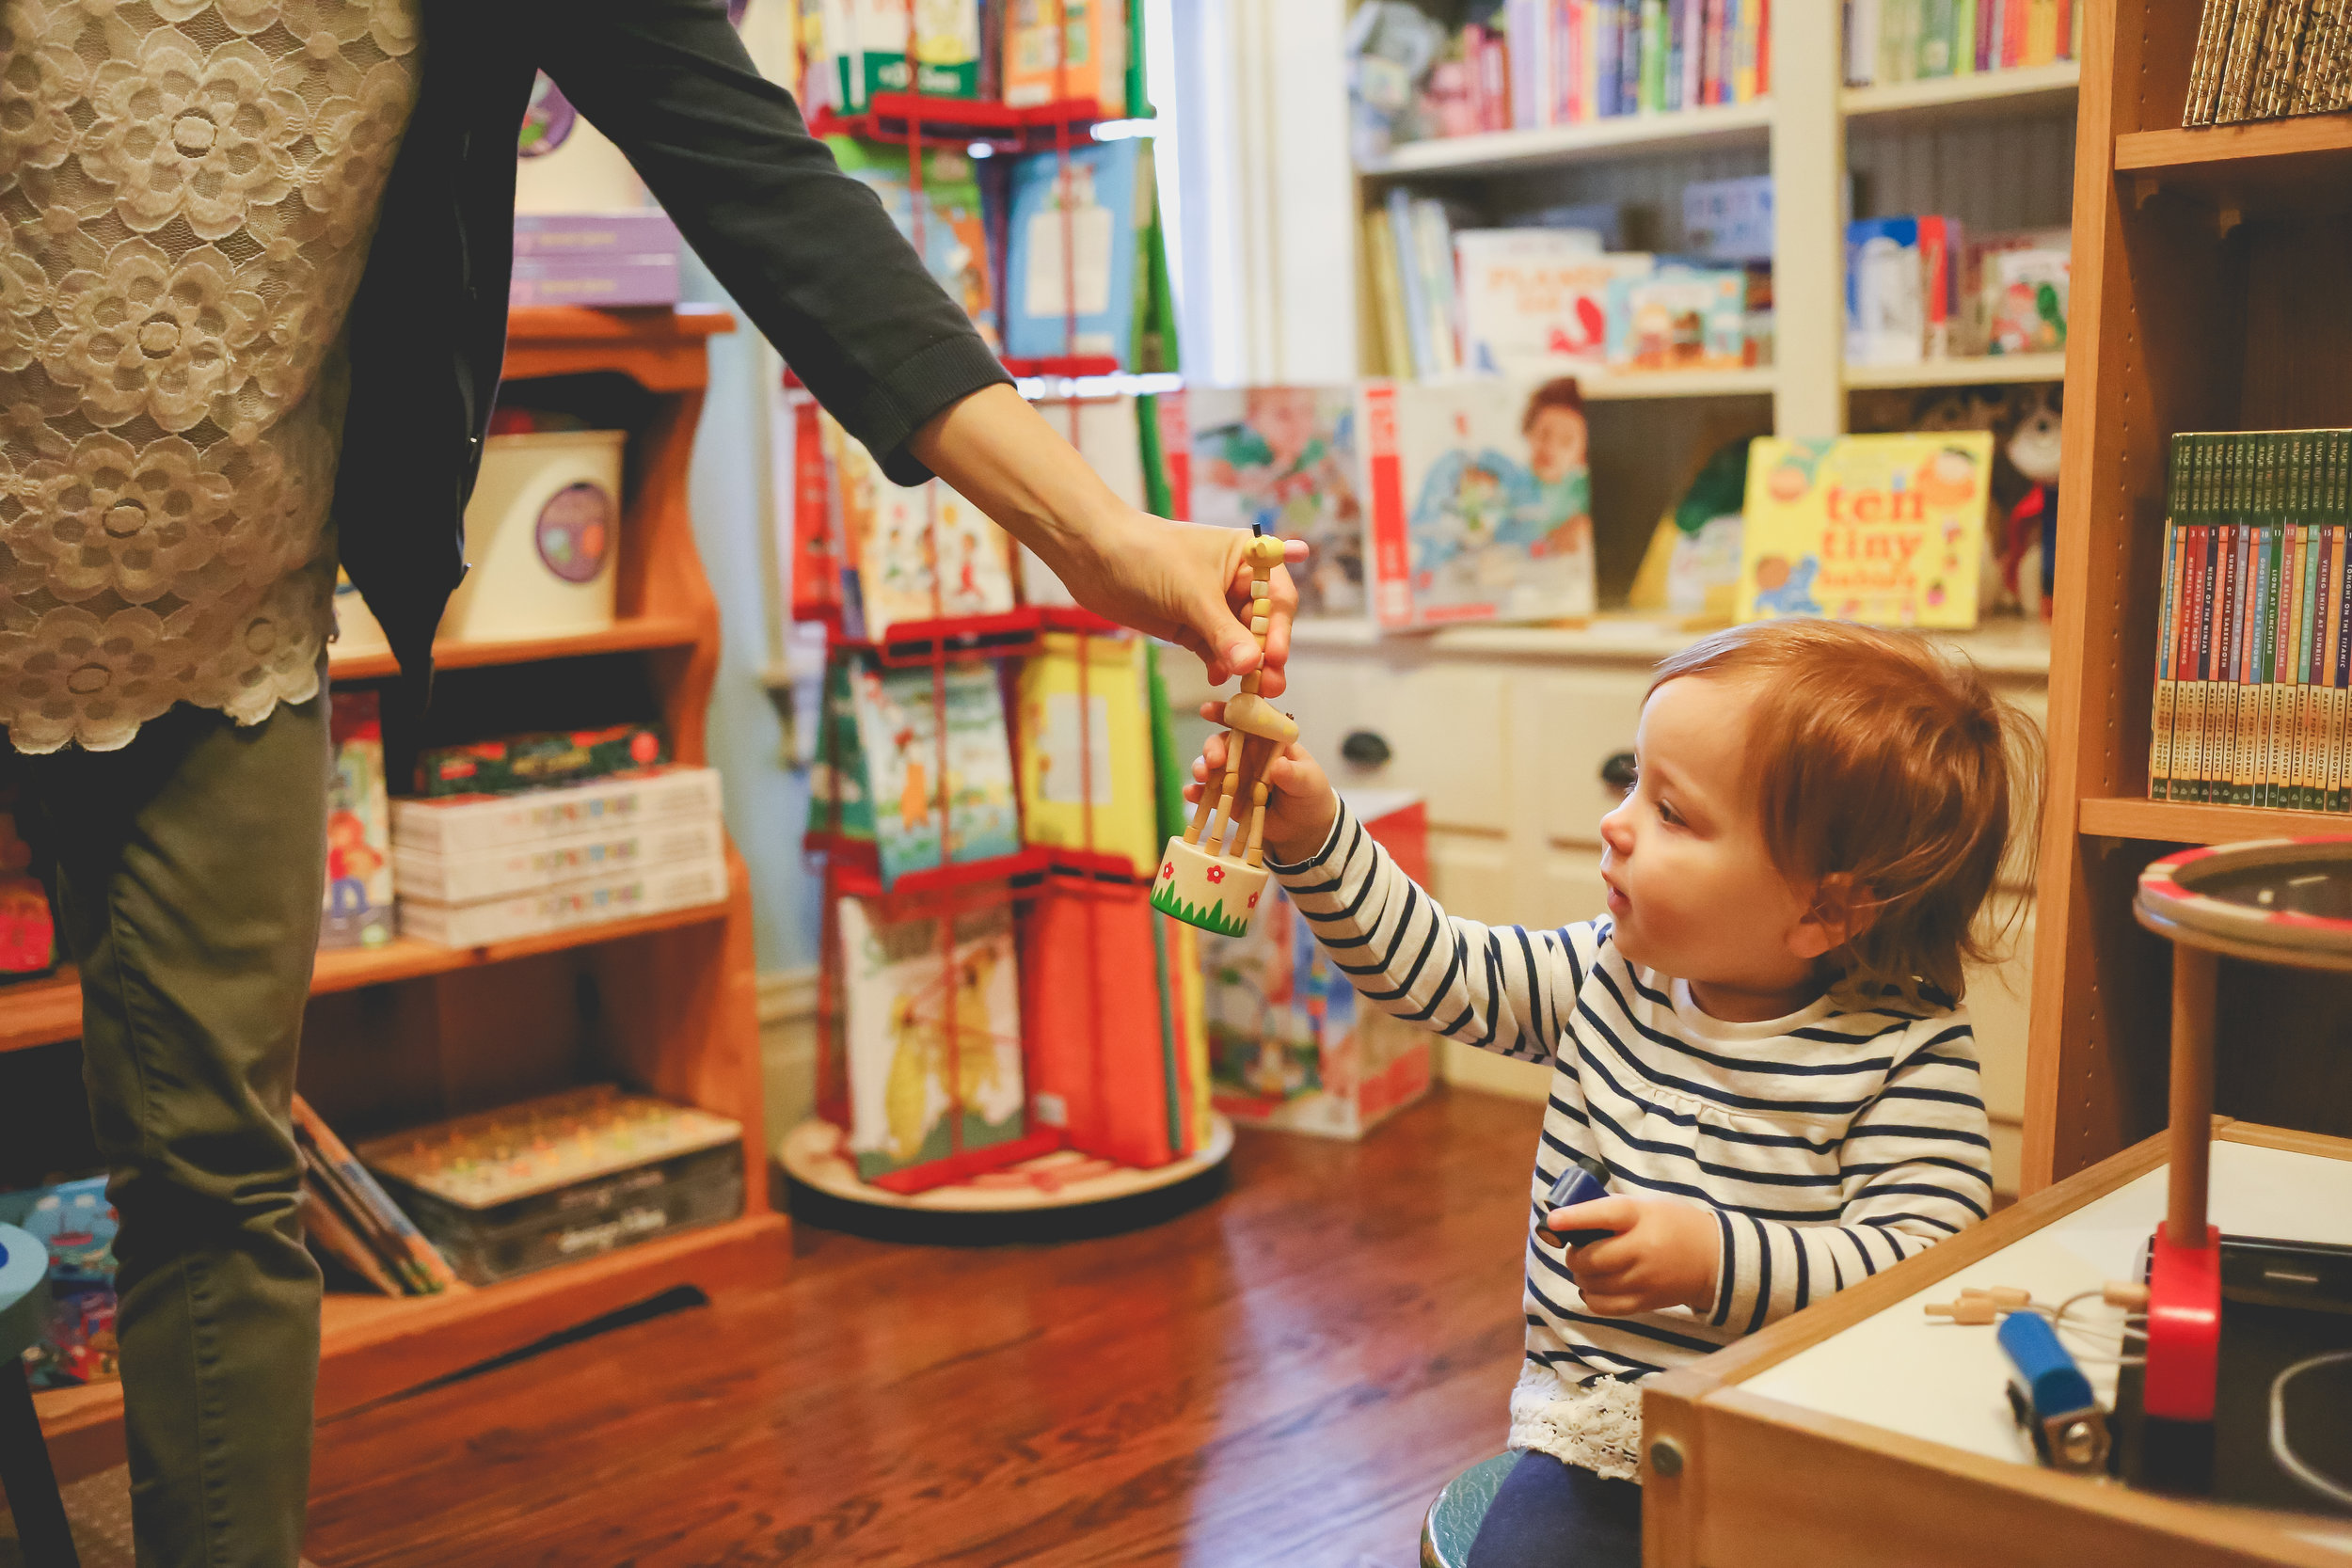 Toddler playing with toys at Let's Play Books in Emmaus, Pennsylvania. Lehigh Valley Documentary Family Photography.